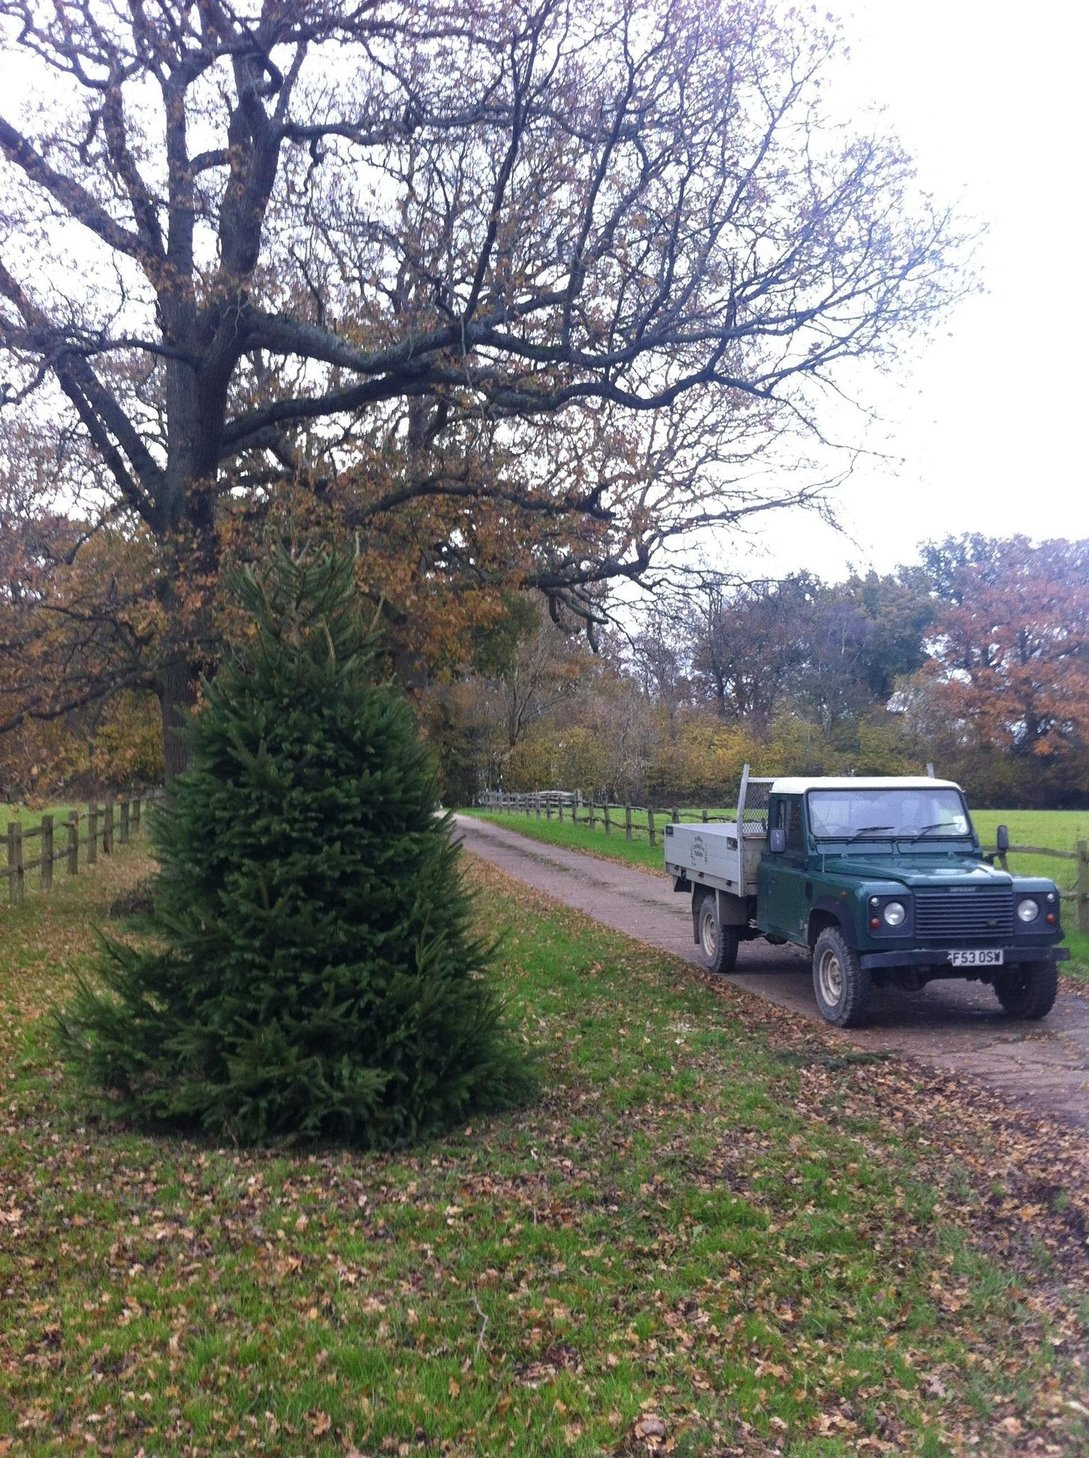 Brazen thieves chop down giant Christmas tree